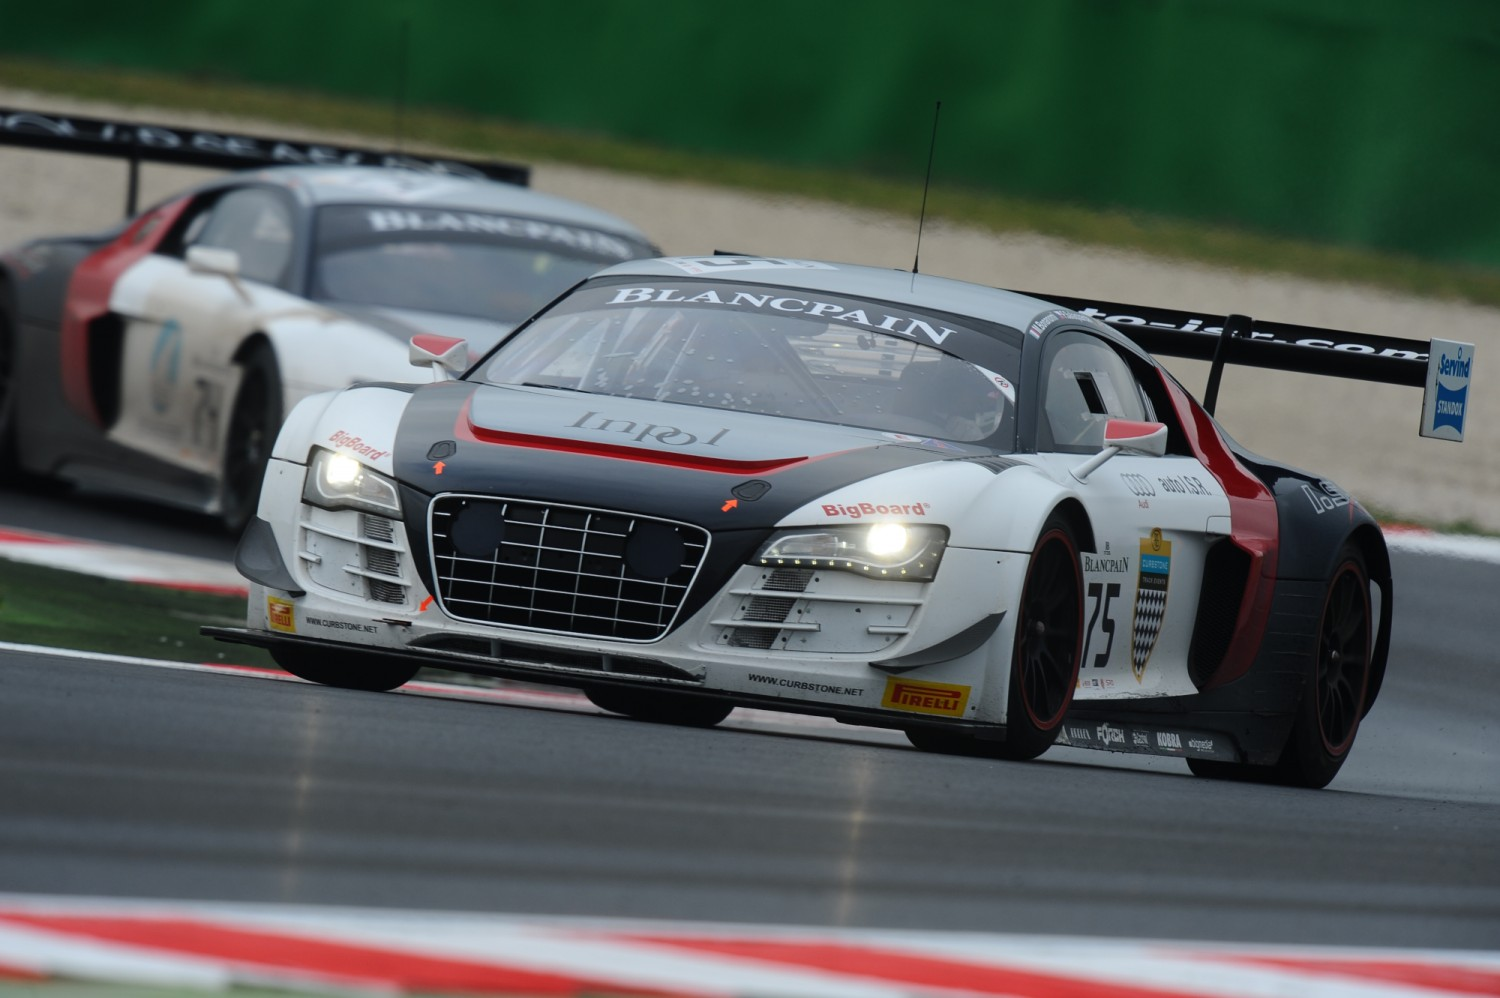 ISR shows speed at official Blancpain Sprint Series test days in Misano